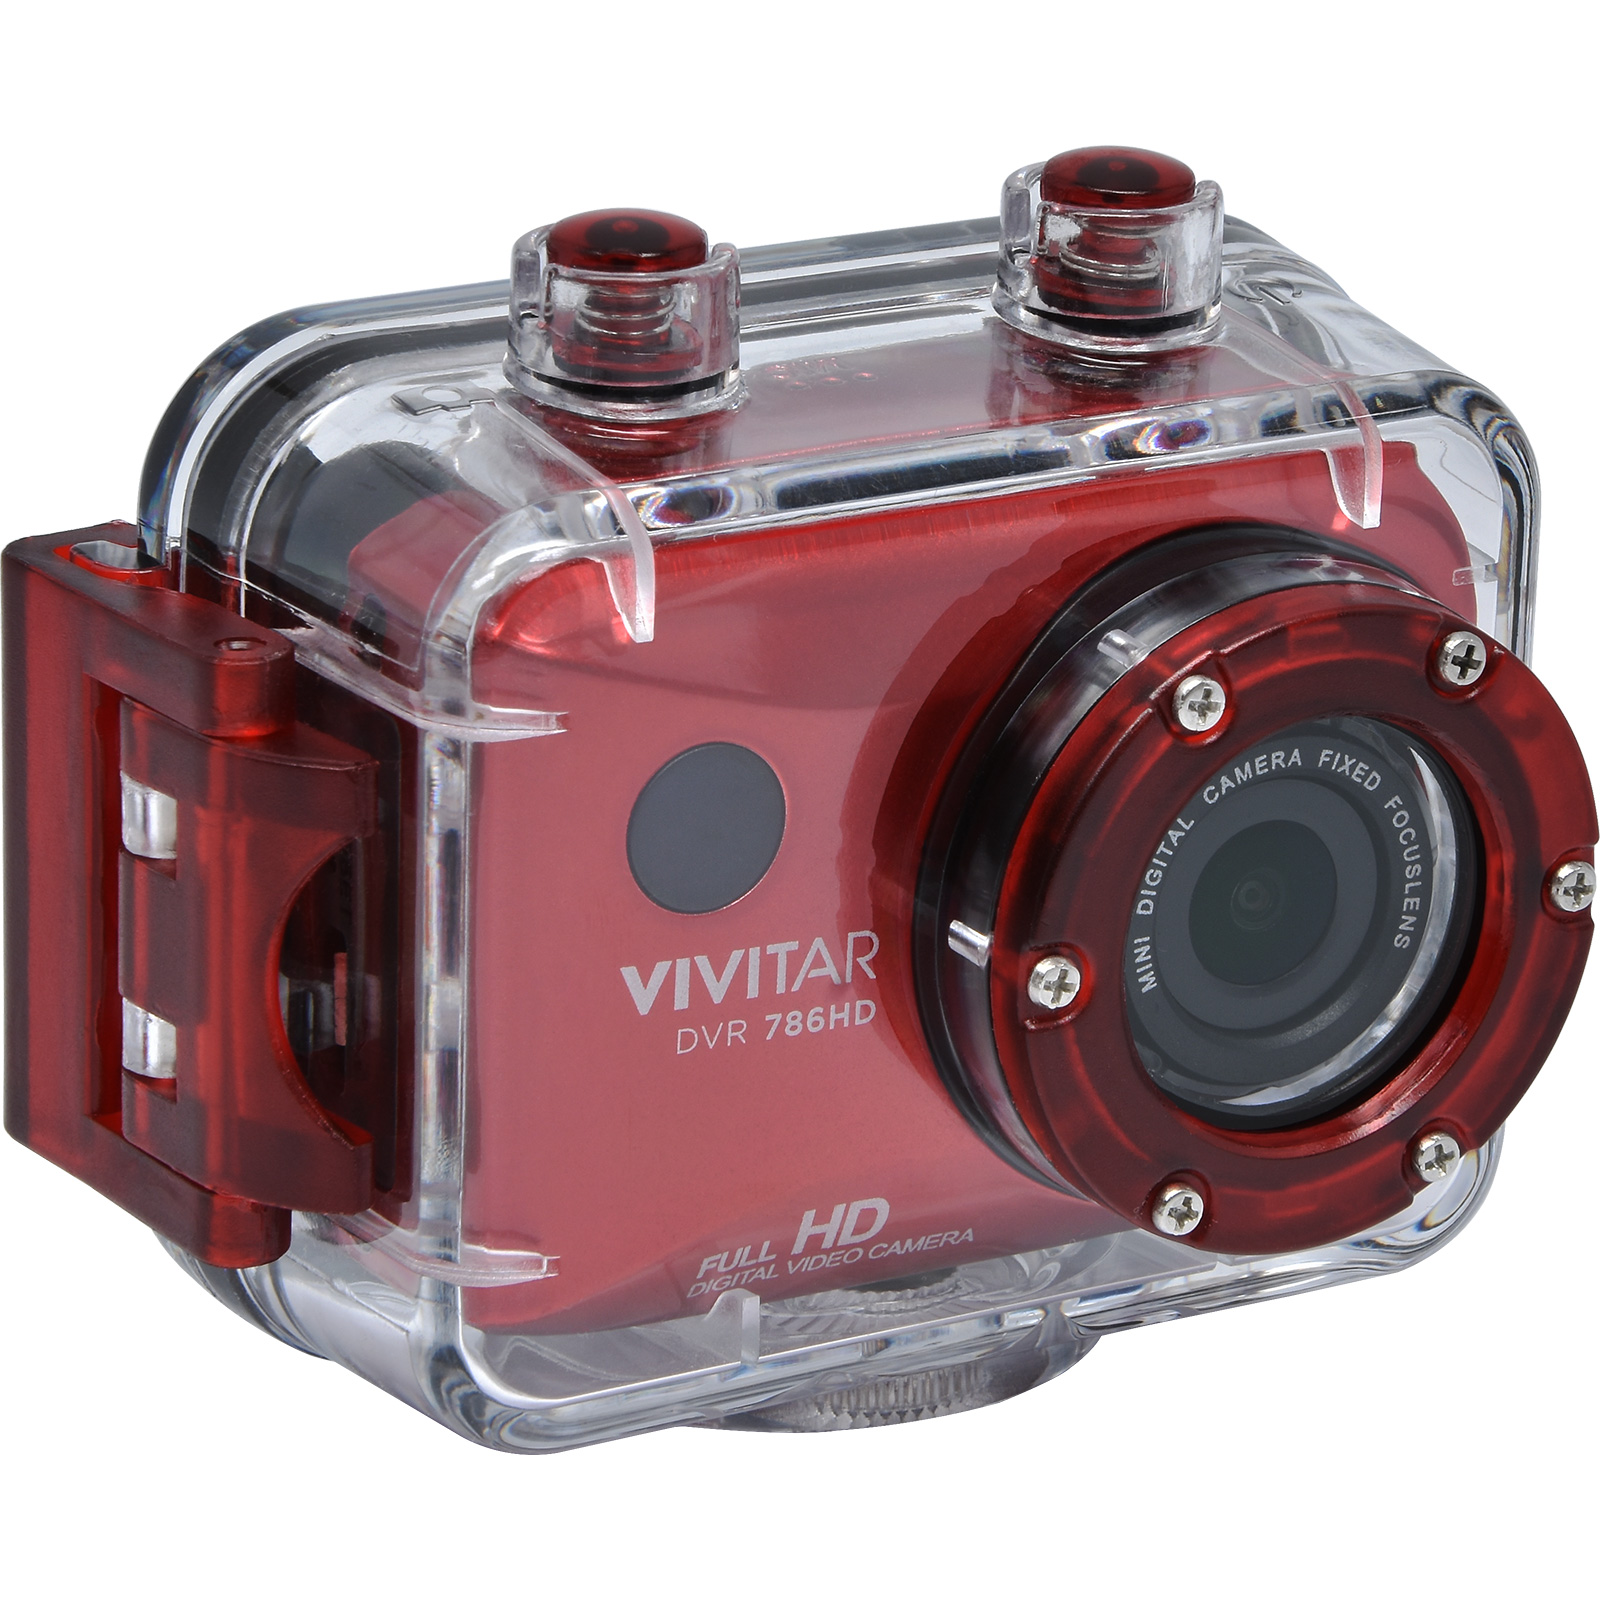 Vivitar DVR786HD 1080p HD Waterproof Action Video Camera Camcorder (Red) with Remote, Helmet & Bike Mounts